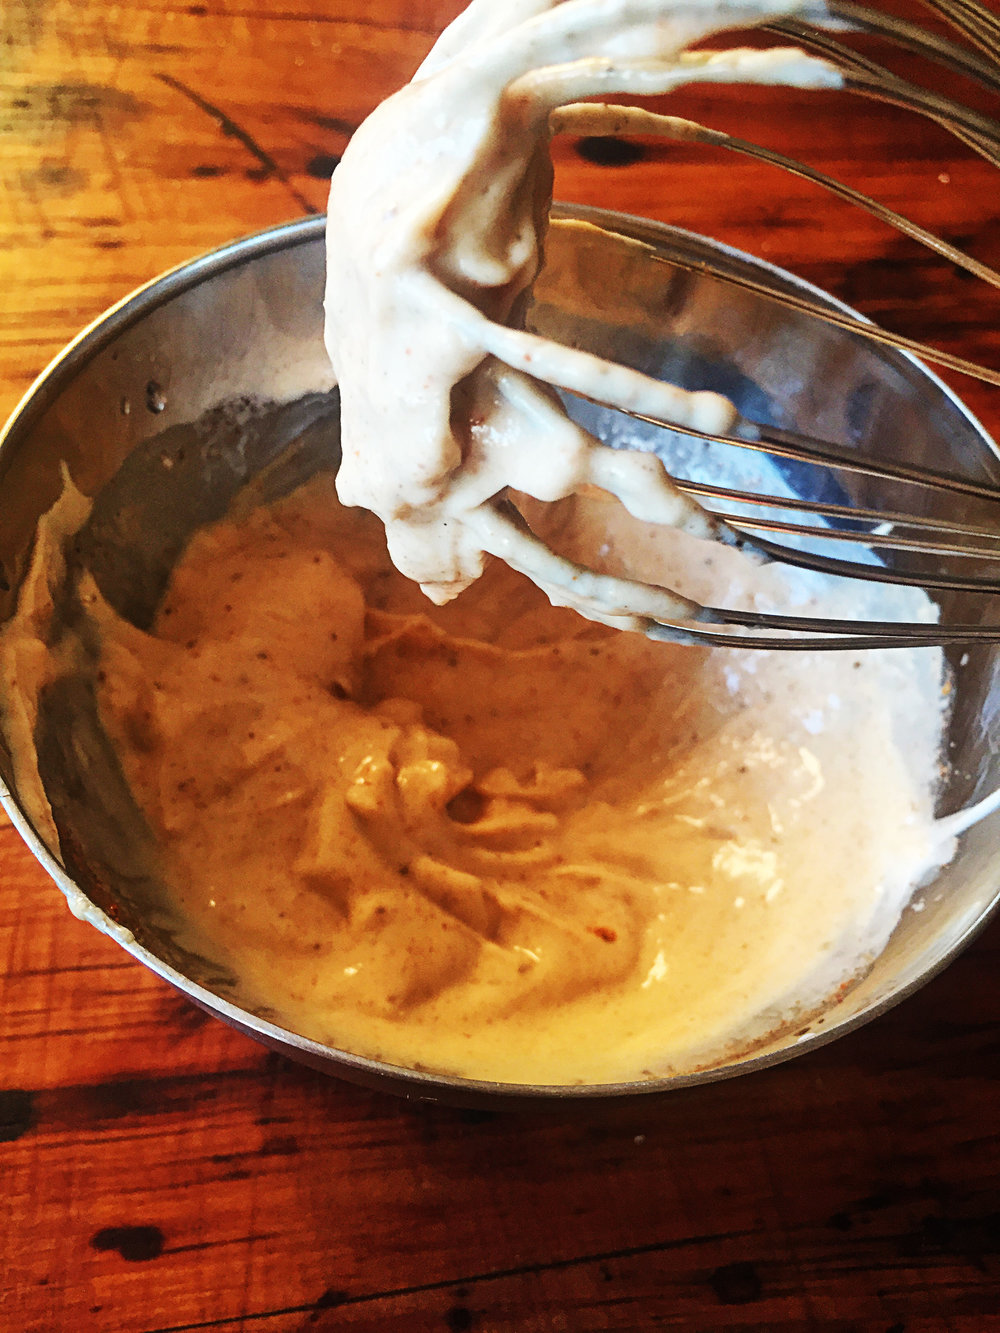 While the fritters are cooking, mix together all the ingredients for the aioli, set aside for dipping.